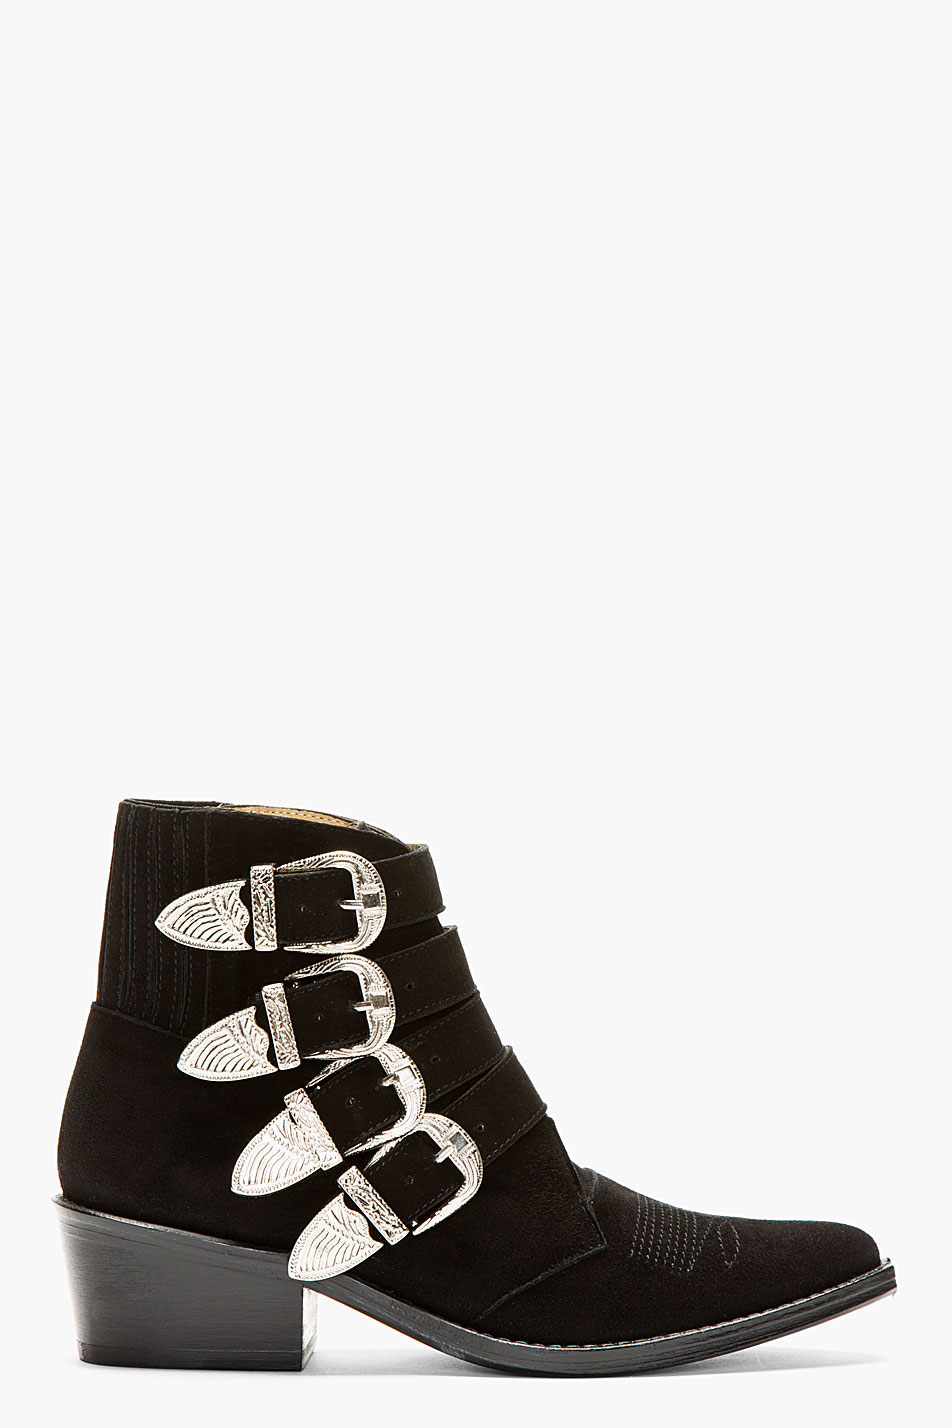 toga pulla black suede western buckle ankle boot in black